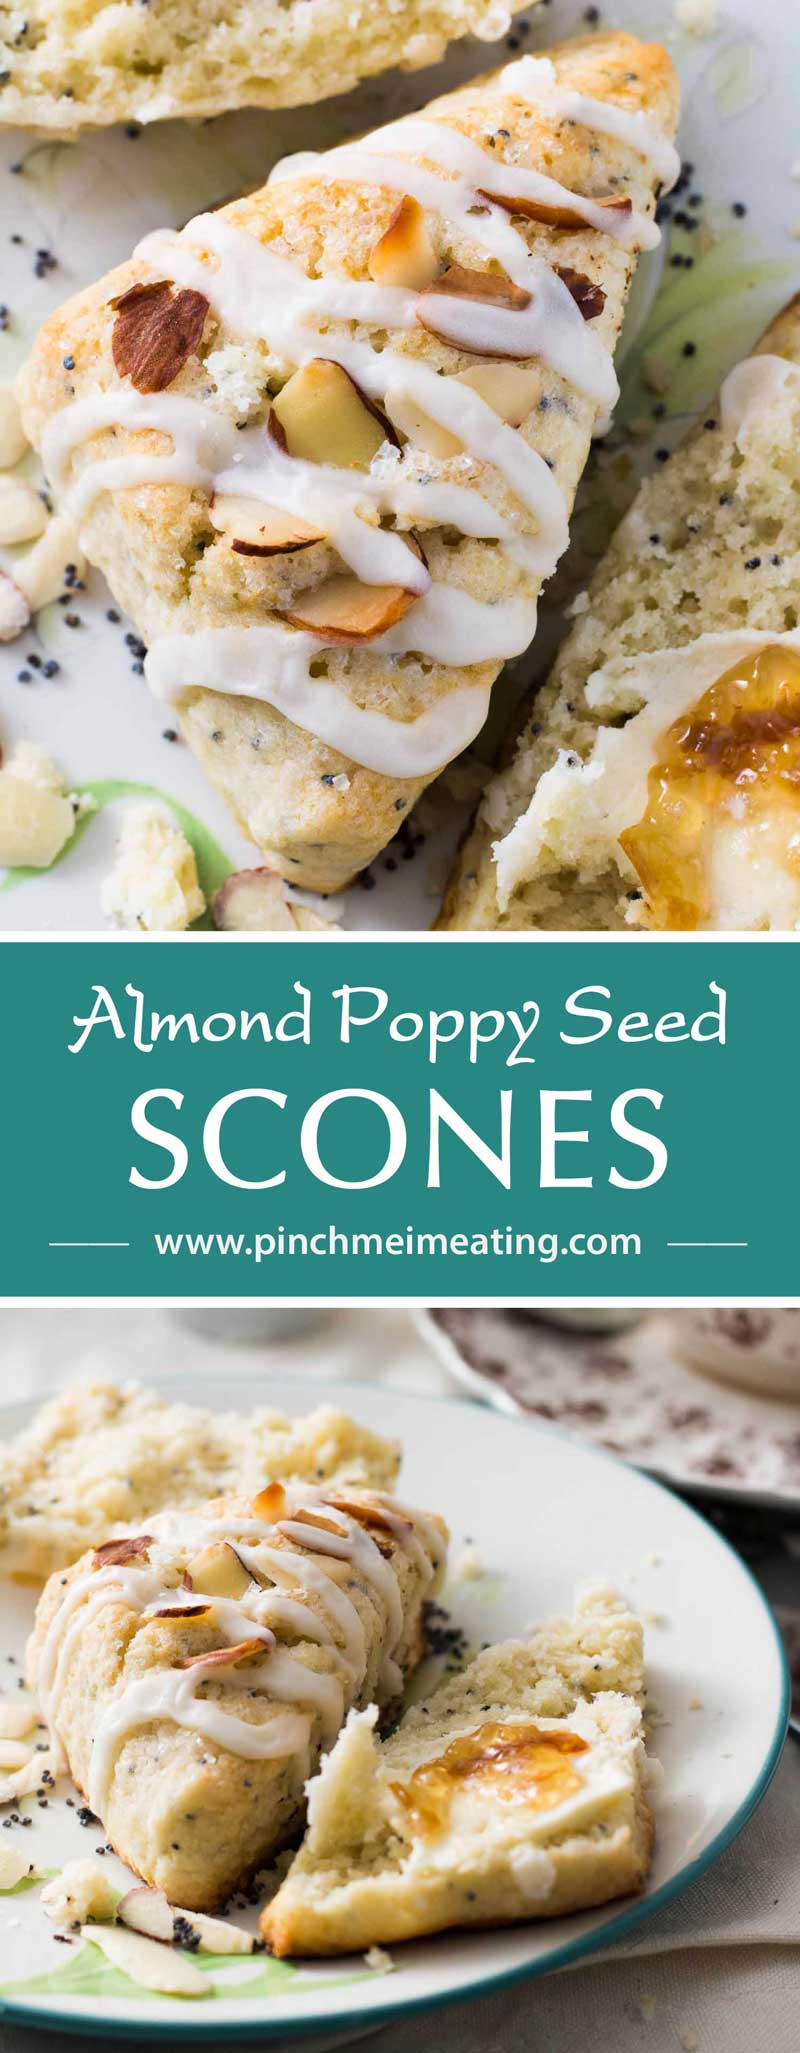 Almond poppy seed scones are a perfect companion to afternoon tea! Moist, dense, crumbly, and not overly sweet, they're a unique variation on the more common lemon poppy seed combination.